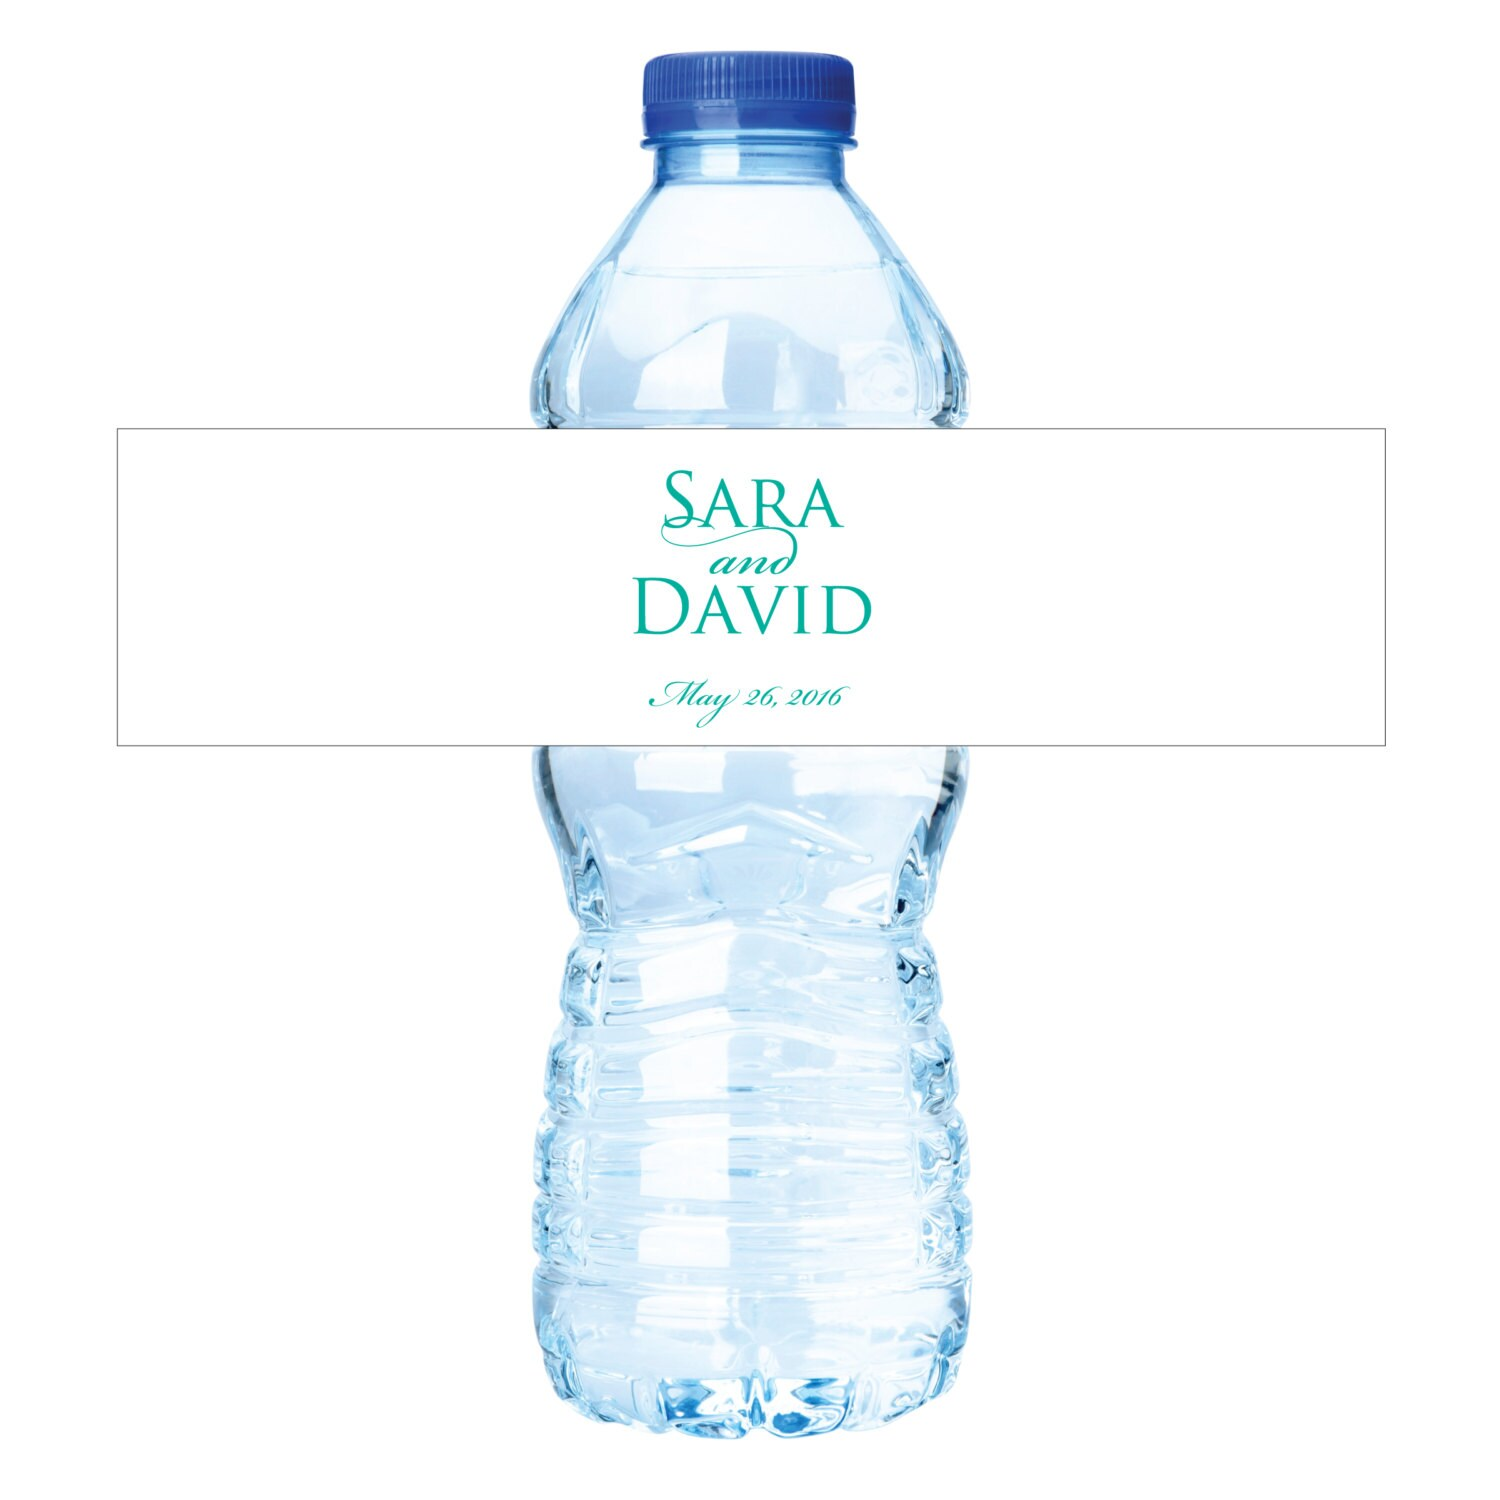 Personalized Sports Bottle Labels: Personalized Wedding Water Bottle Labels Waterproof Labels